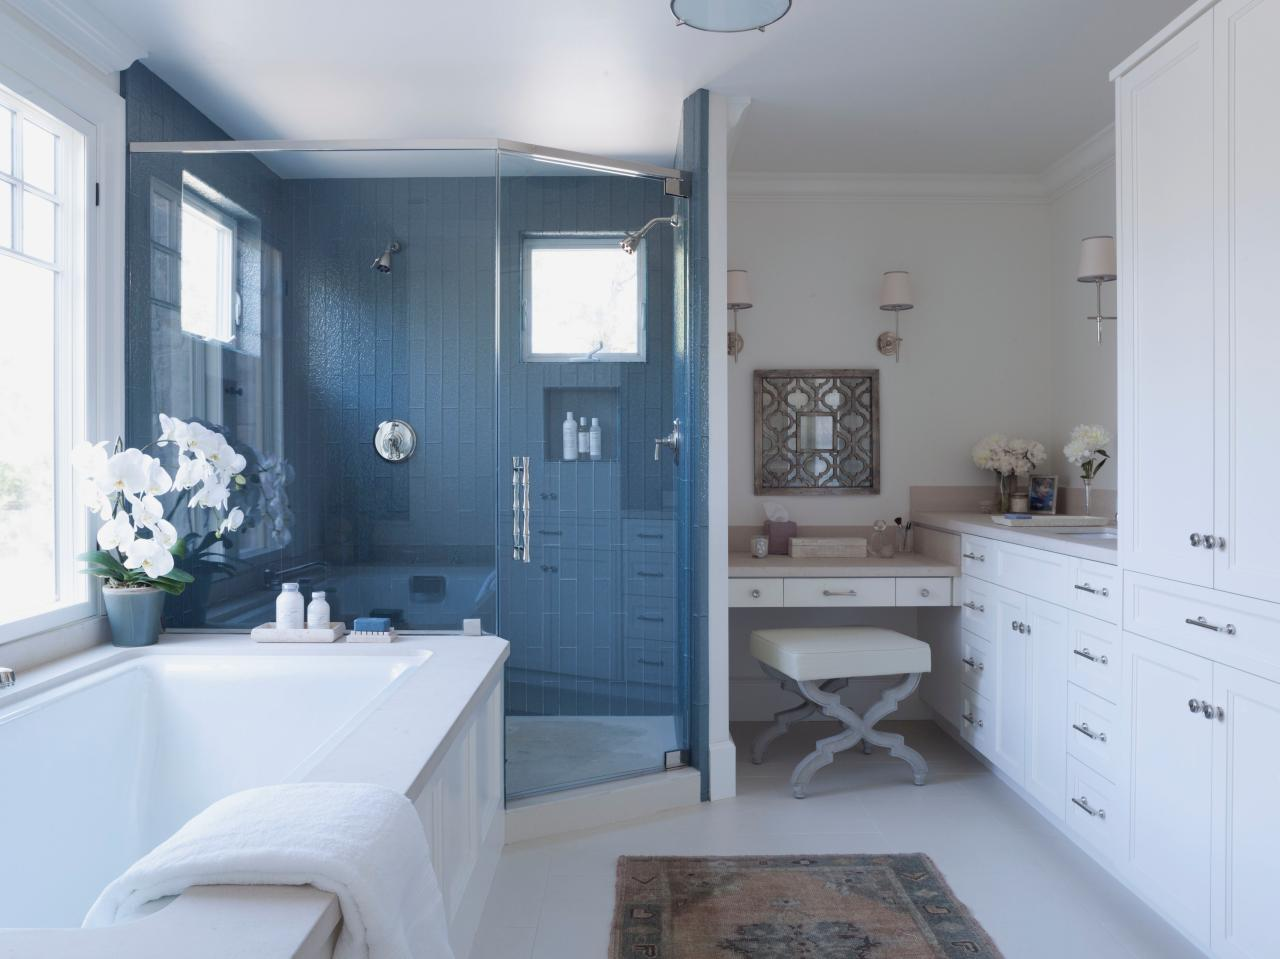 Bathroom Remodel Strategies: High-Level Budgets | DIY